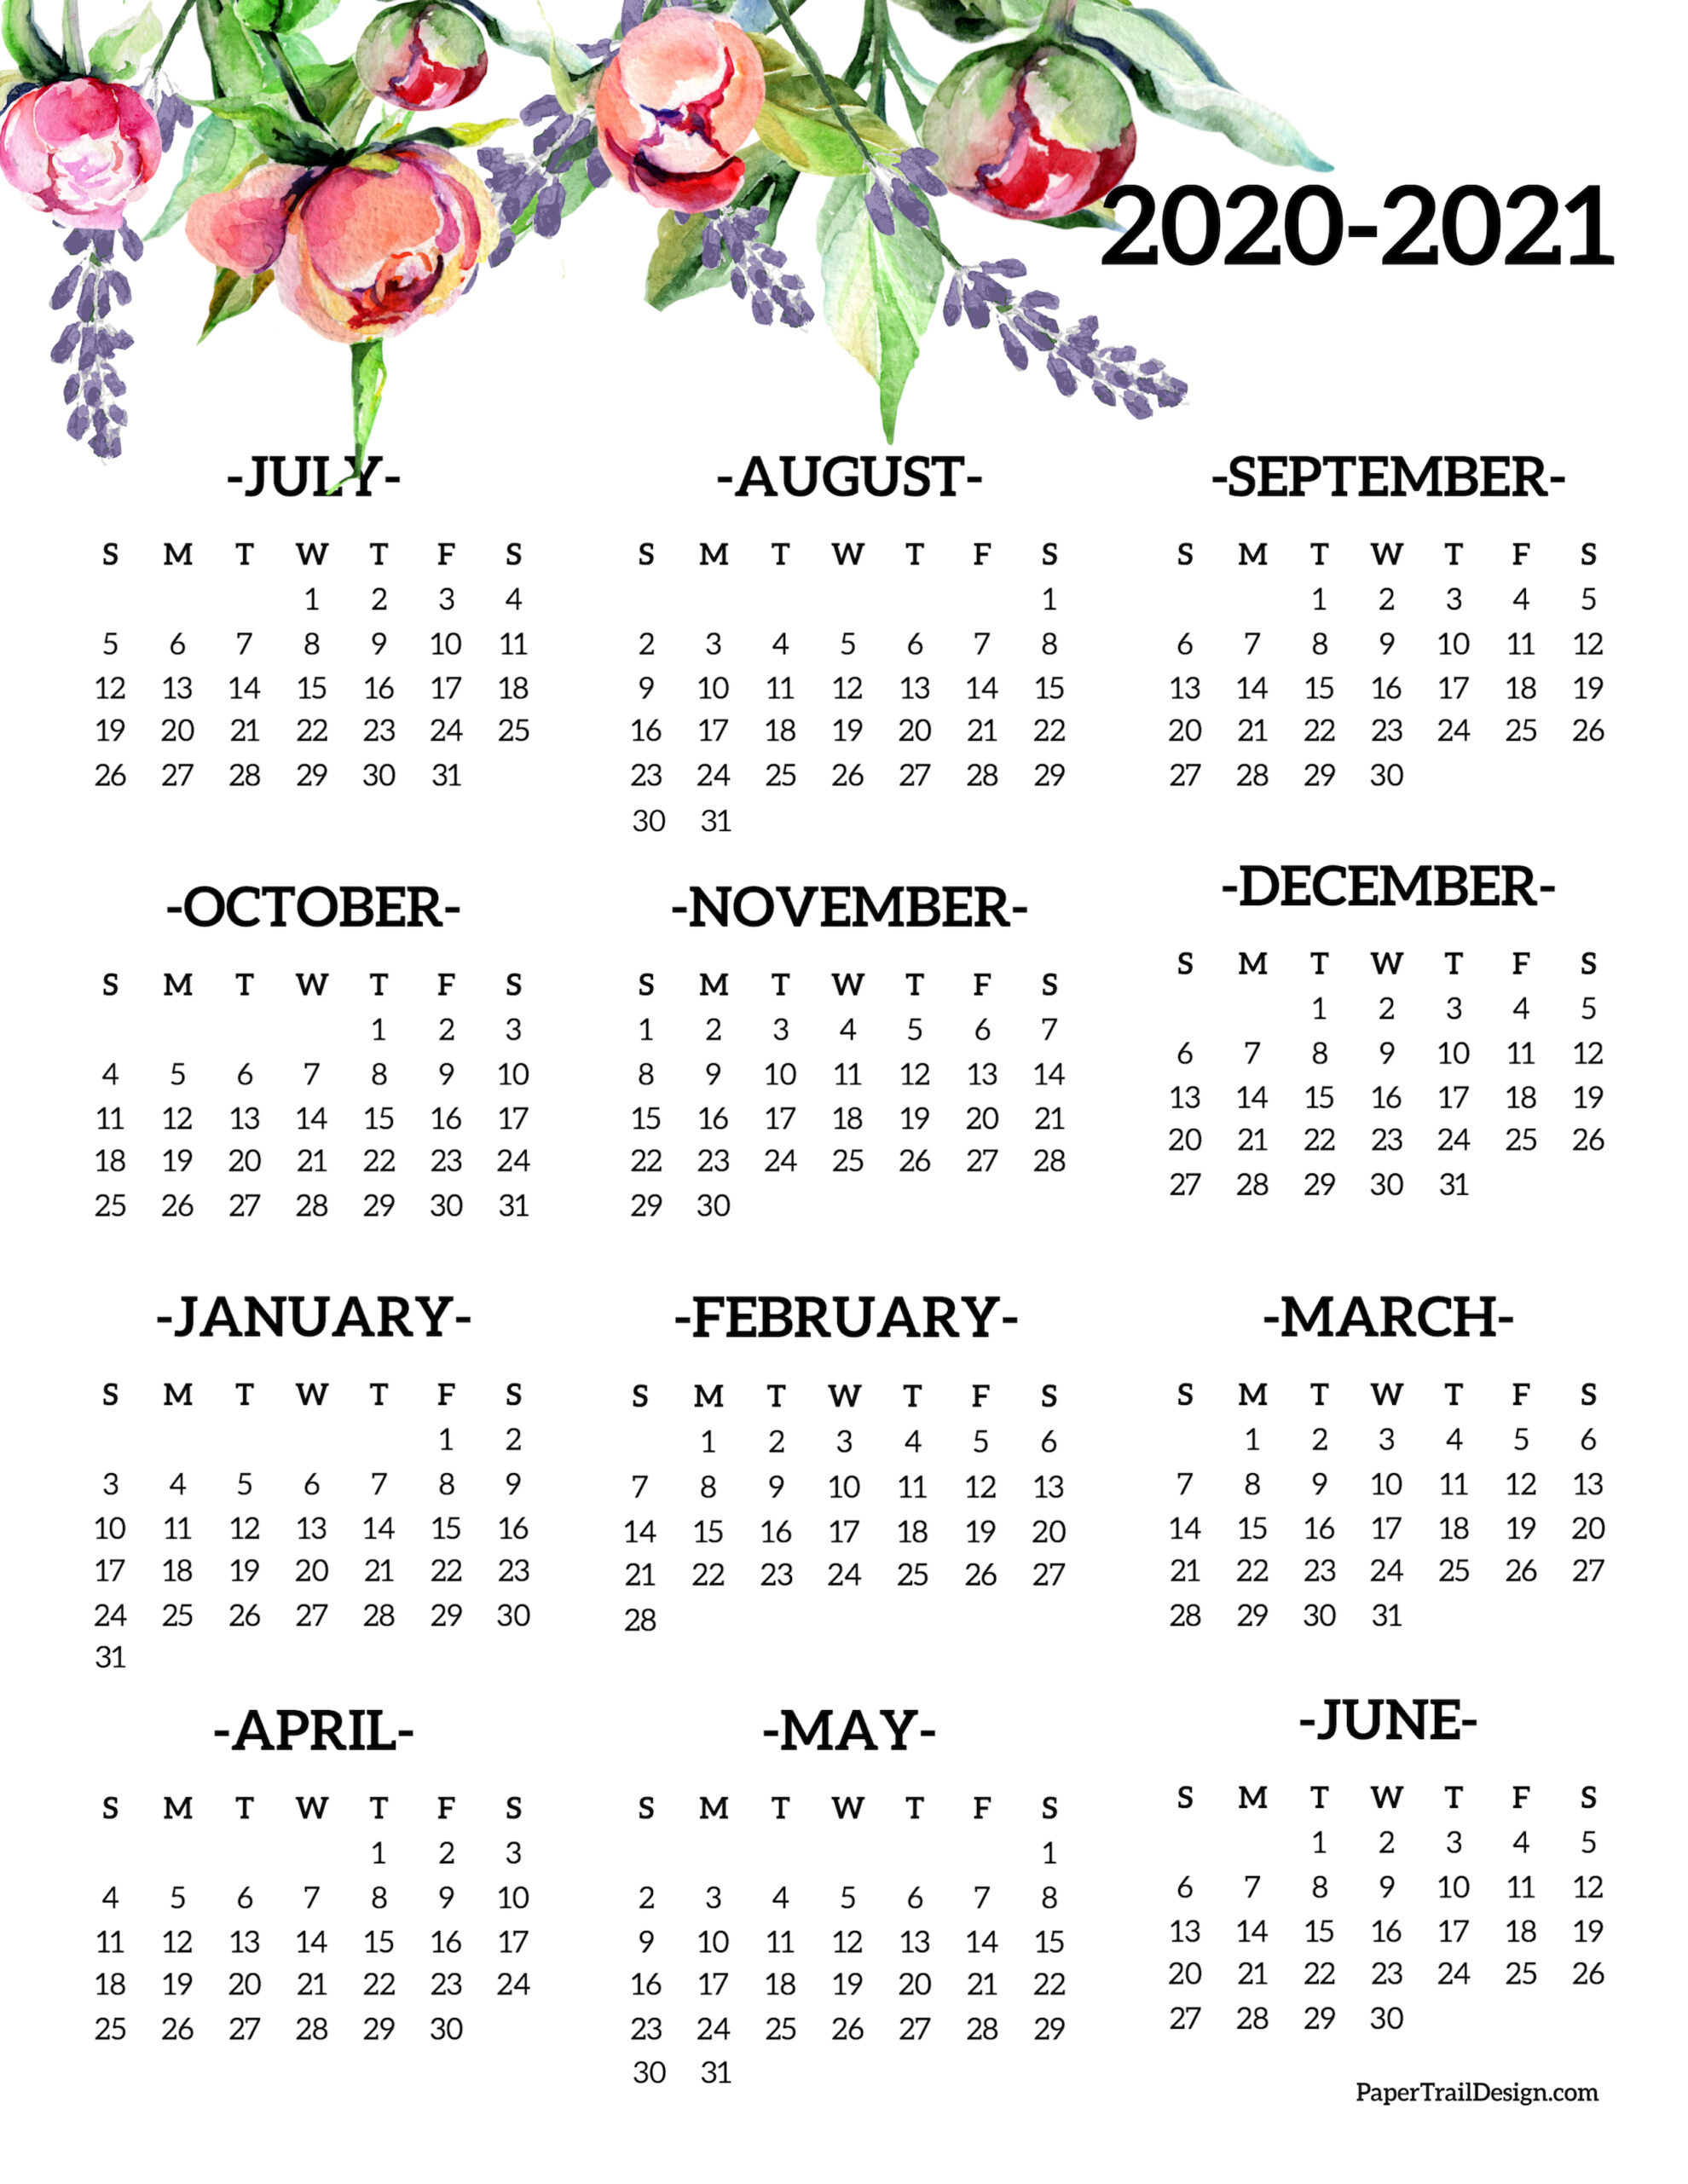 2020-2021 School Year Calendar Free Printable | Paper ...